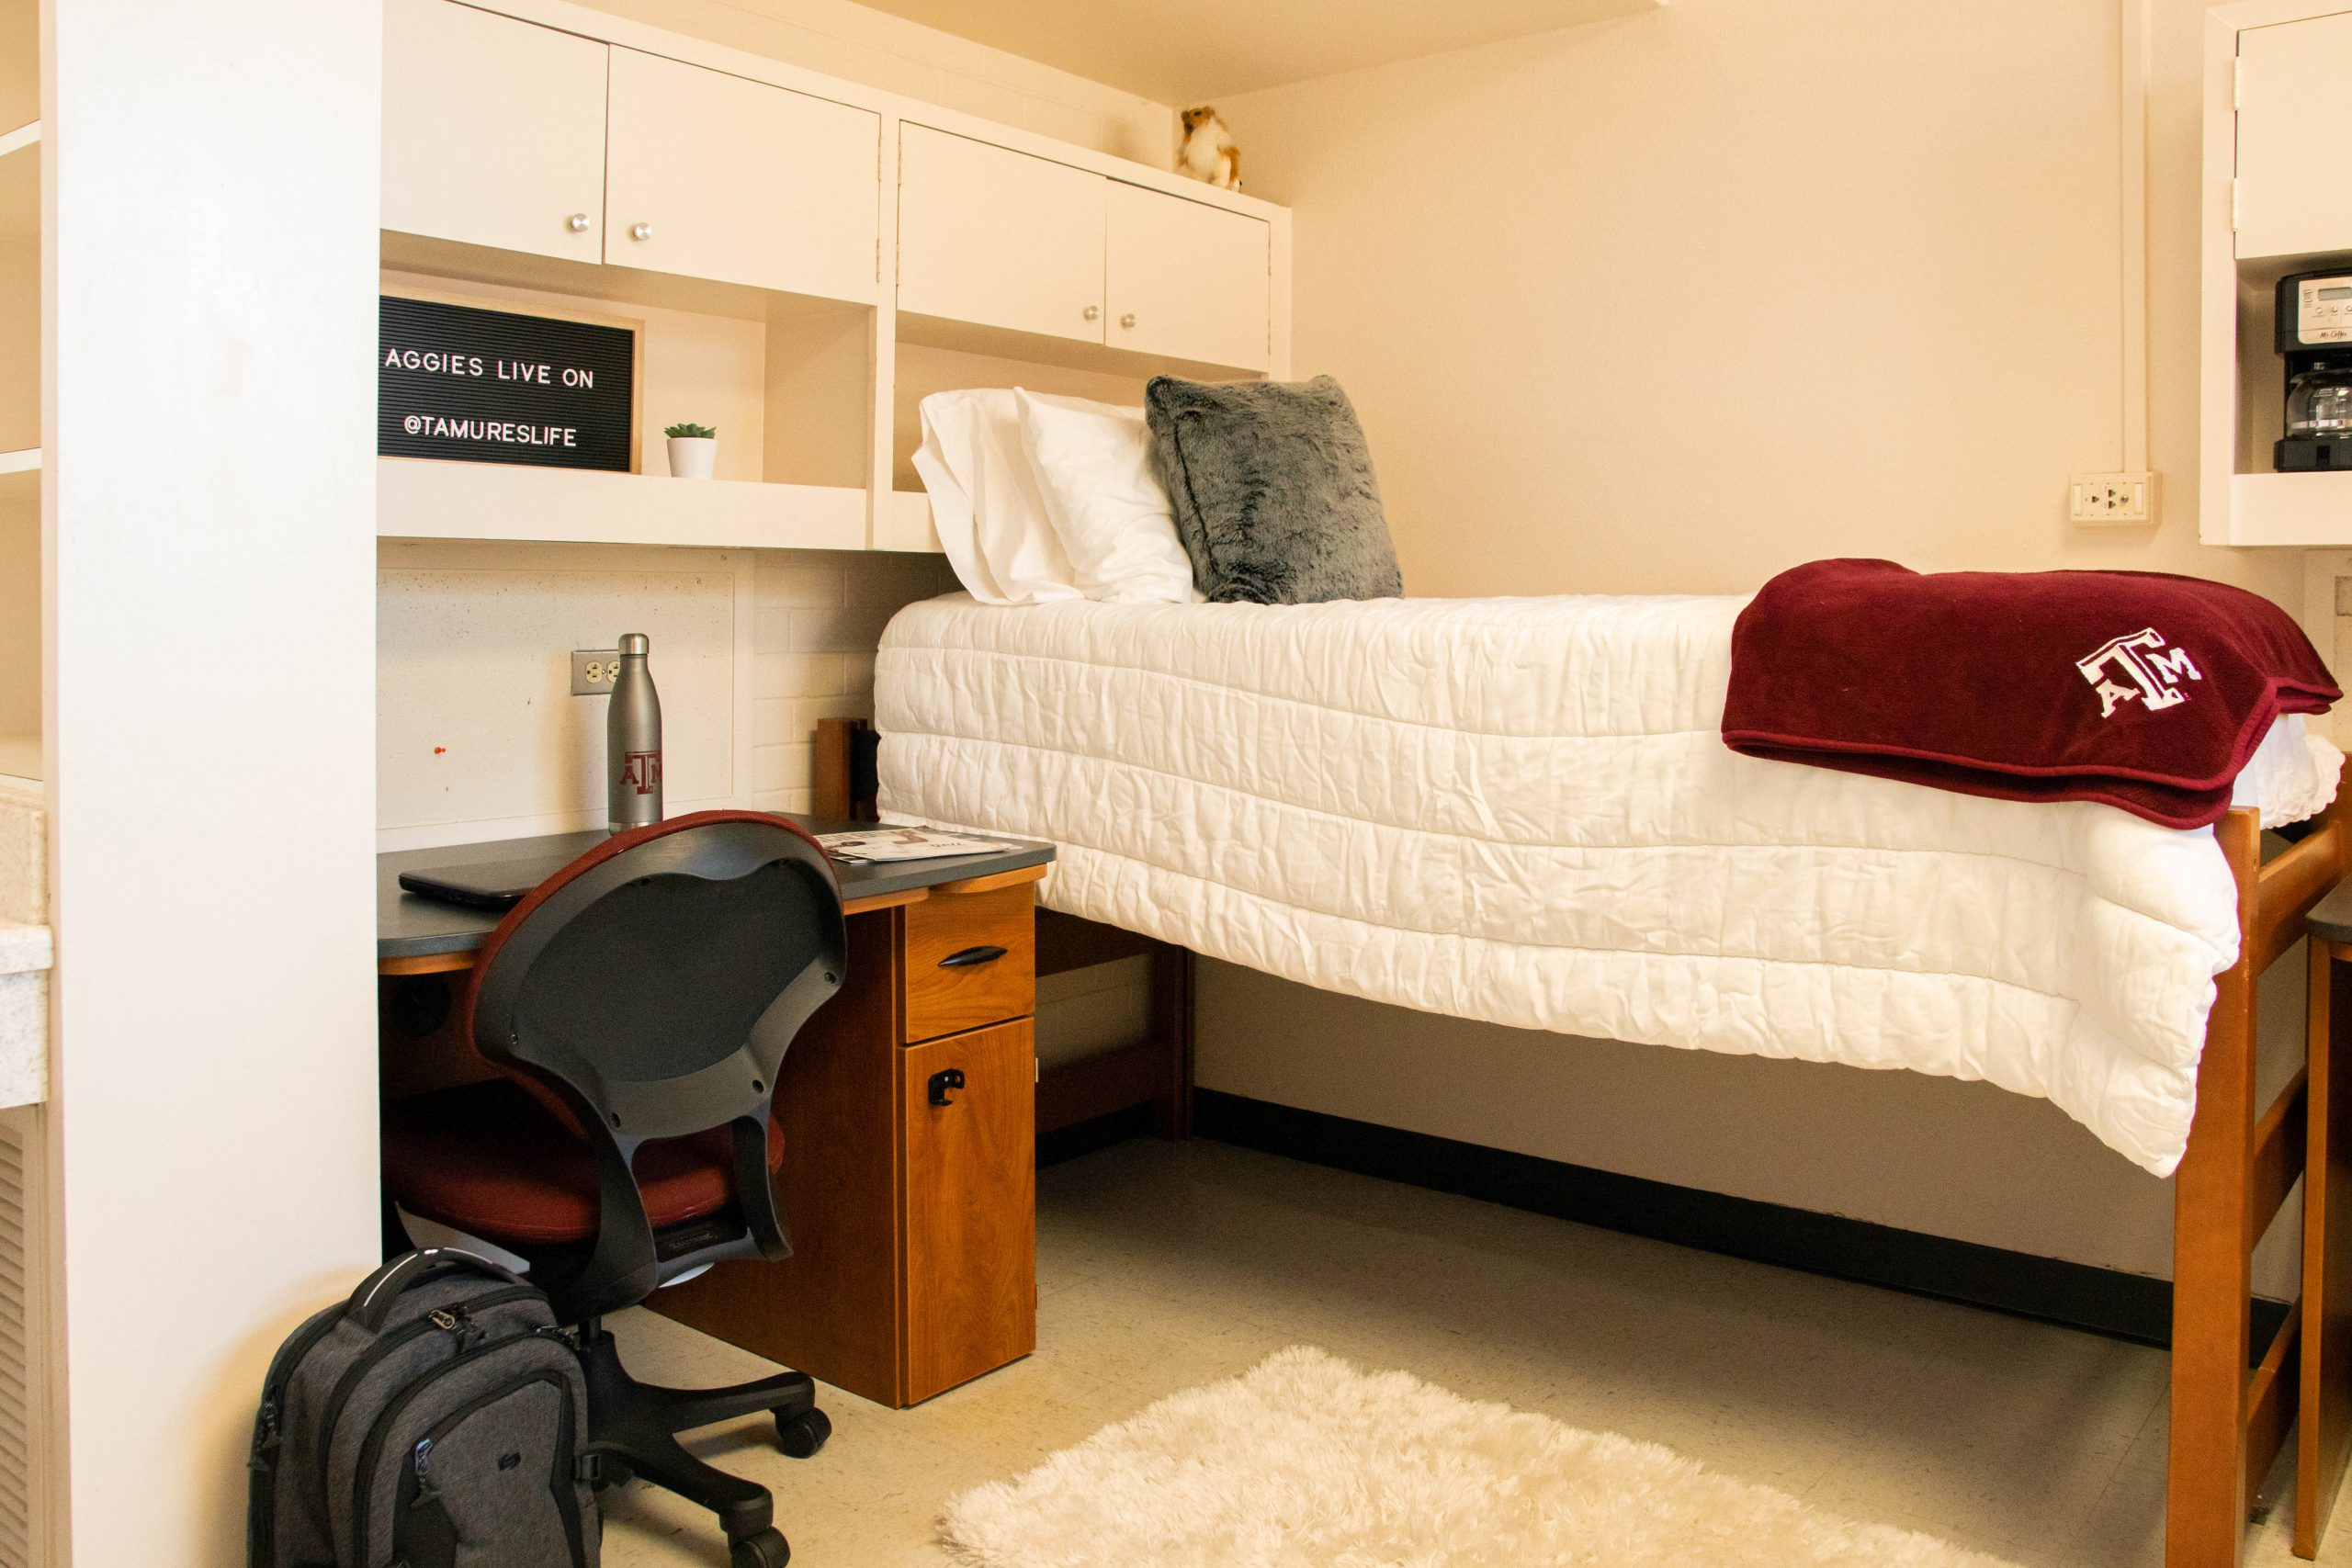 1 lofted bed, 1 study desk and chair, 2 cabinets